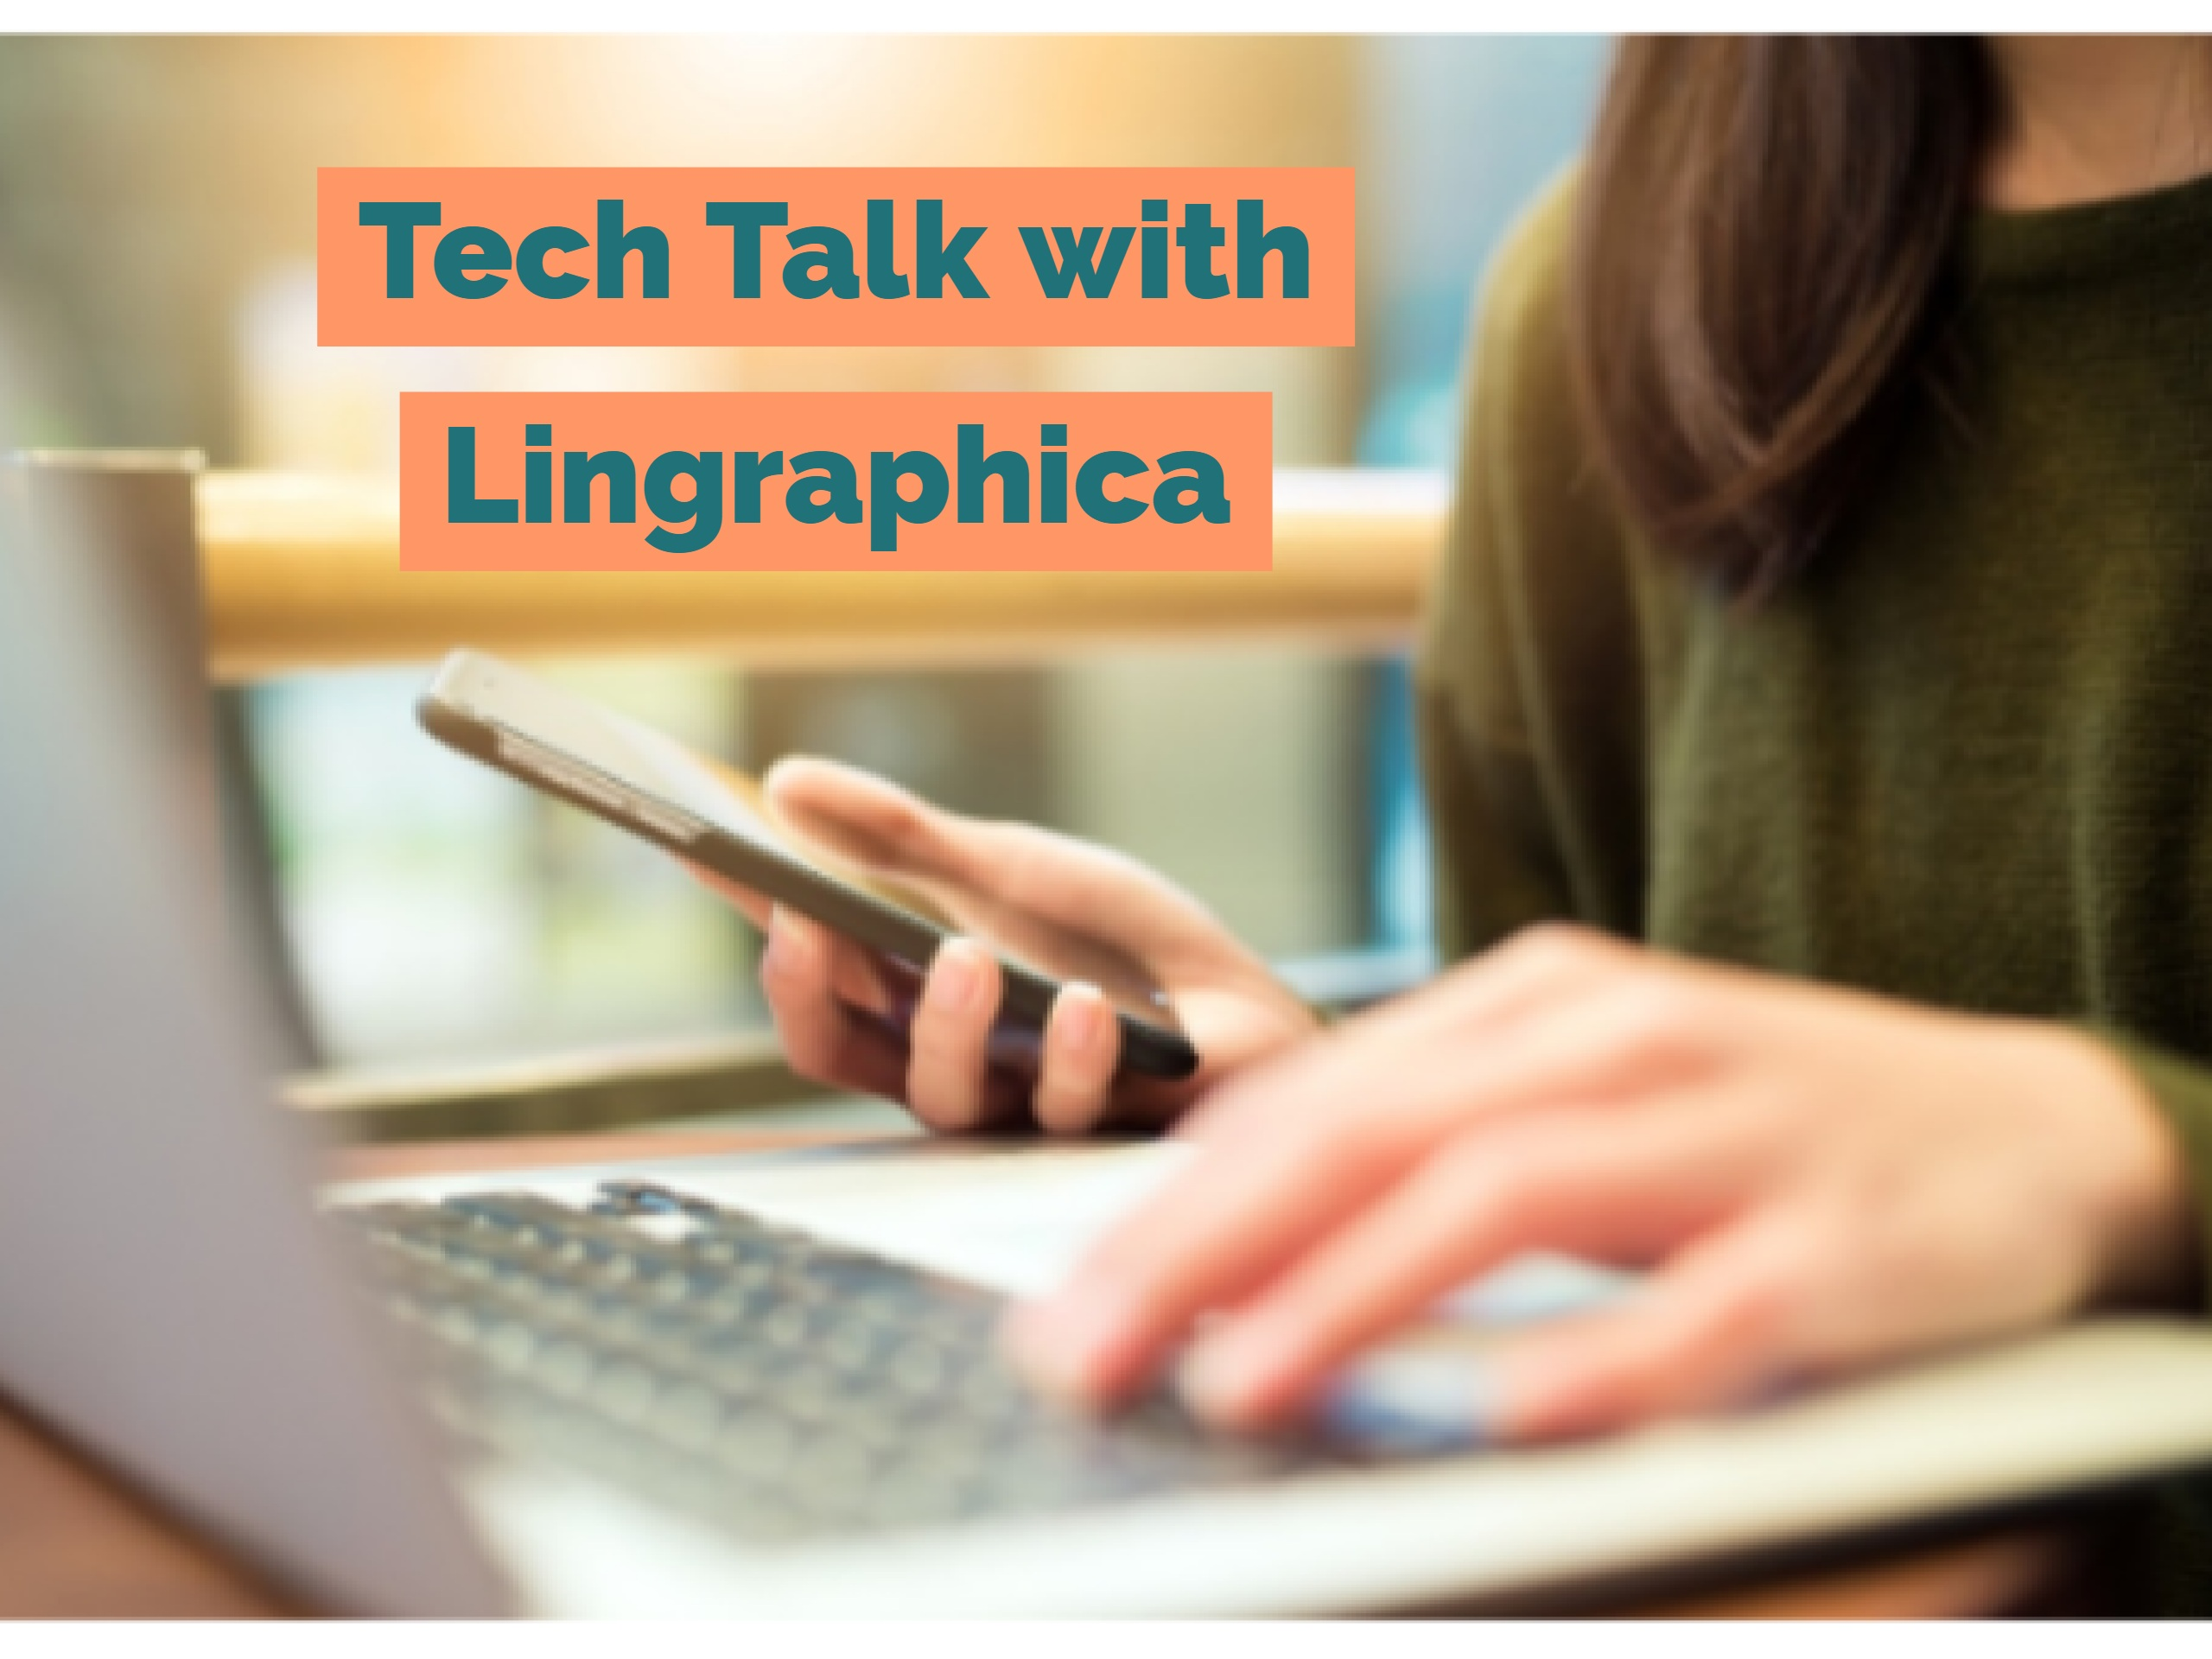 Tech Talk Q&A with Lingraphica